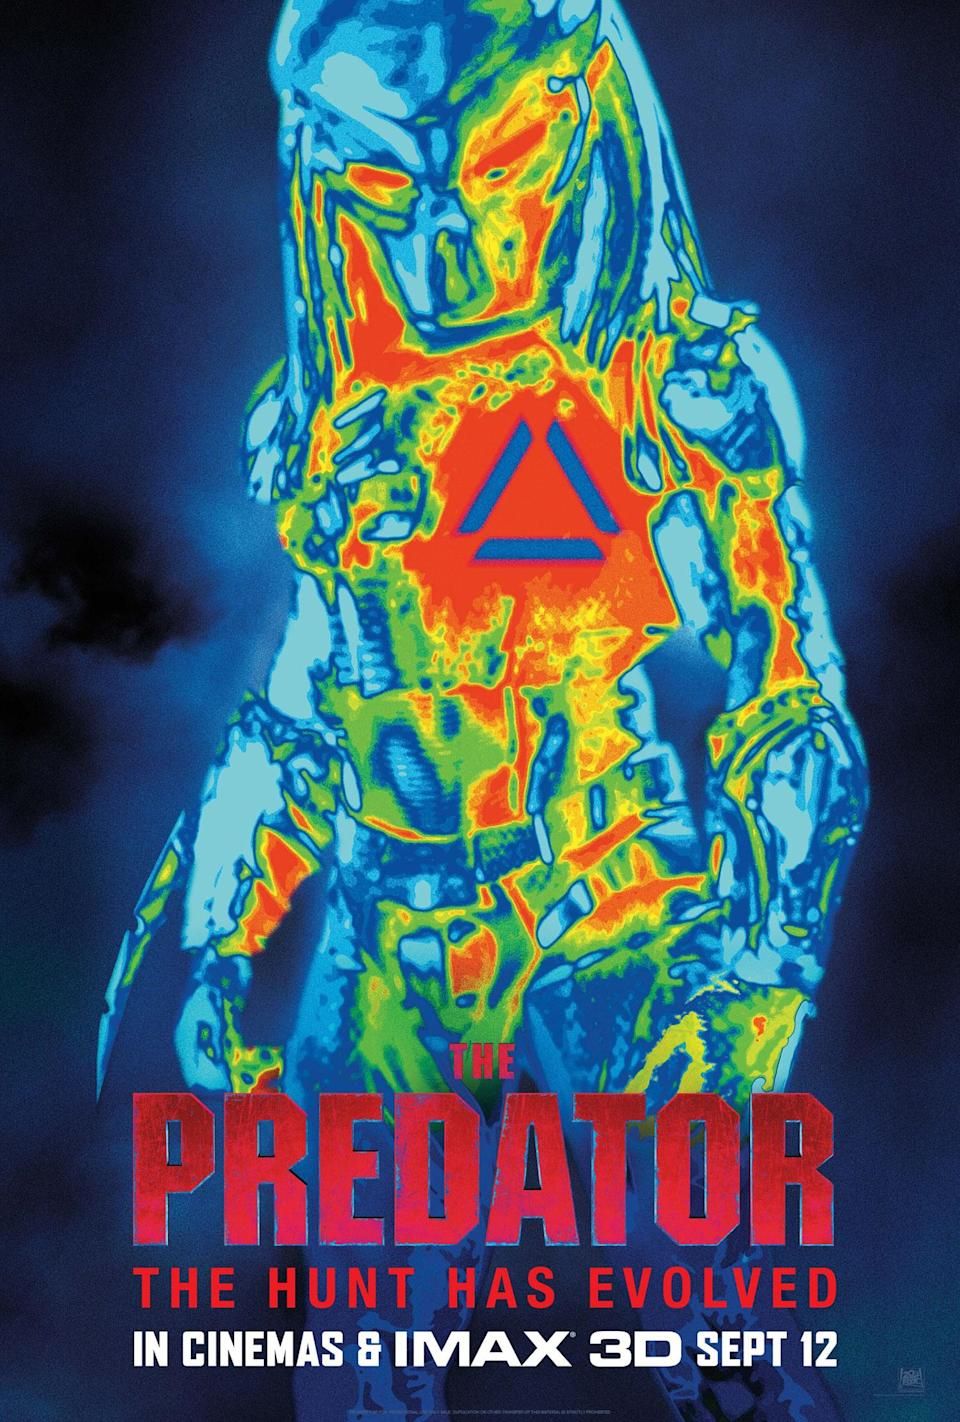 The iconography is instantly recognisable in this one-sheet for <i>The Predator</i> (20th Century Fox)